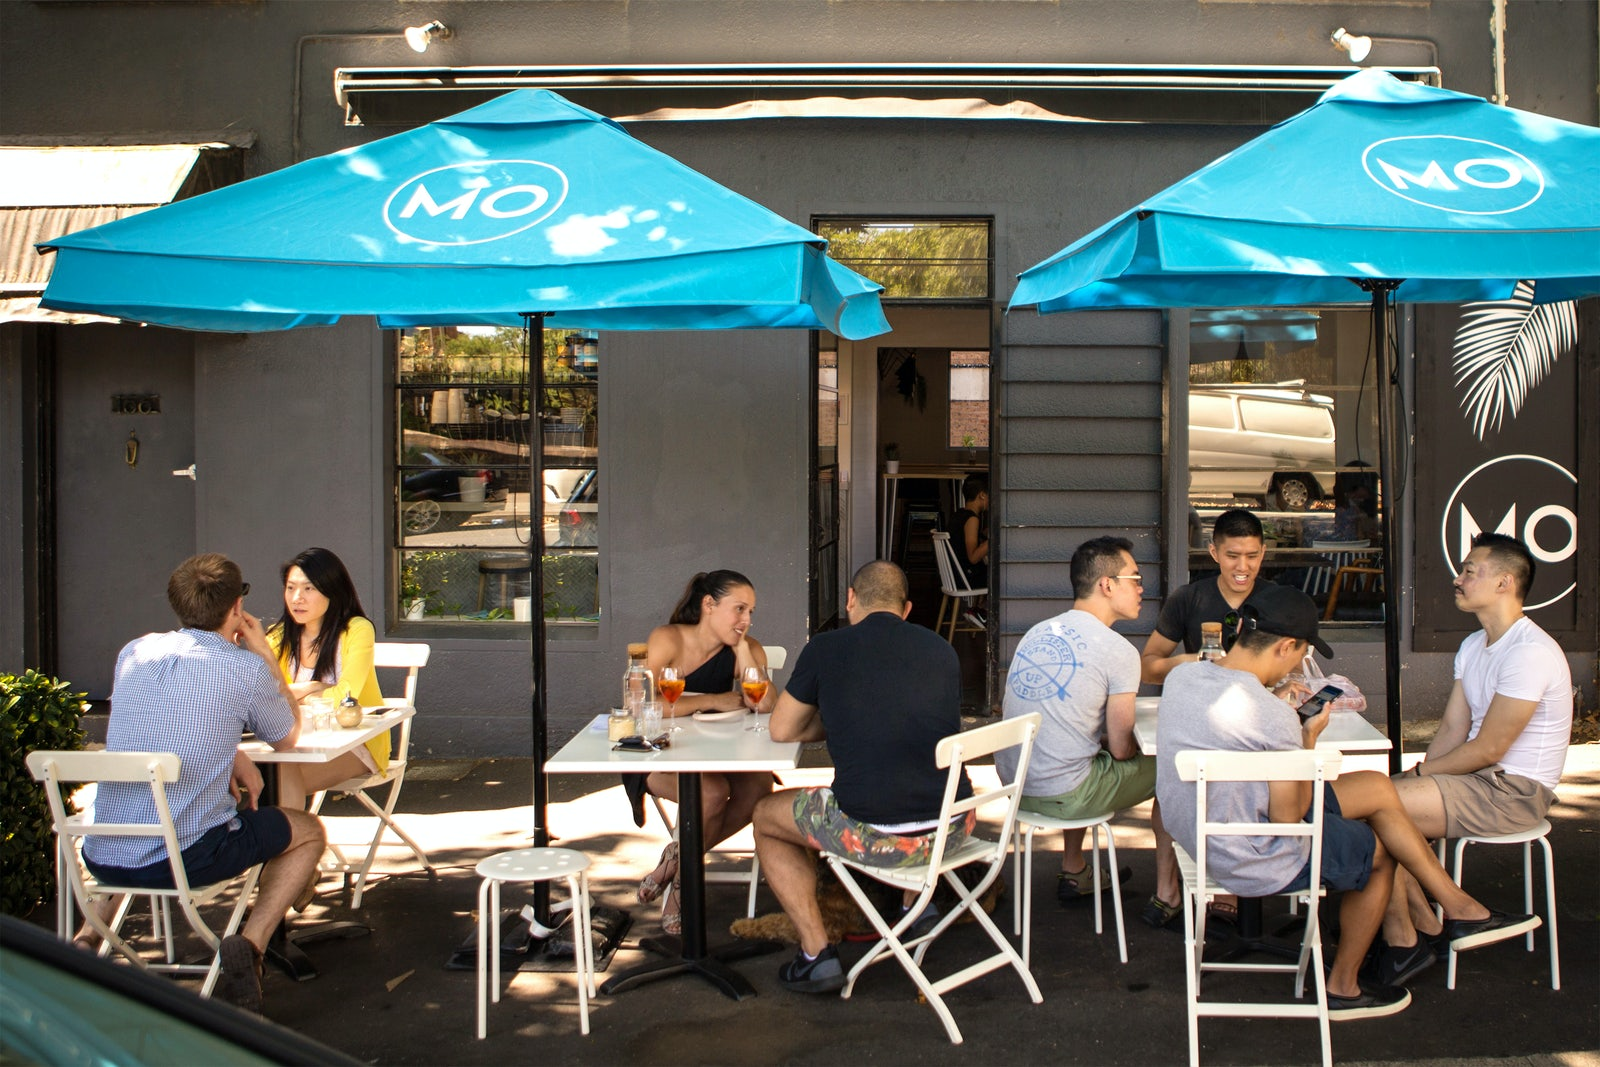 A picture of the Mo Cafe located near Surry Hills in Sydney